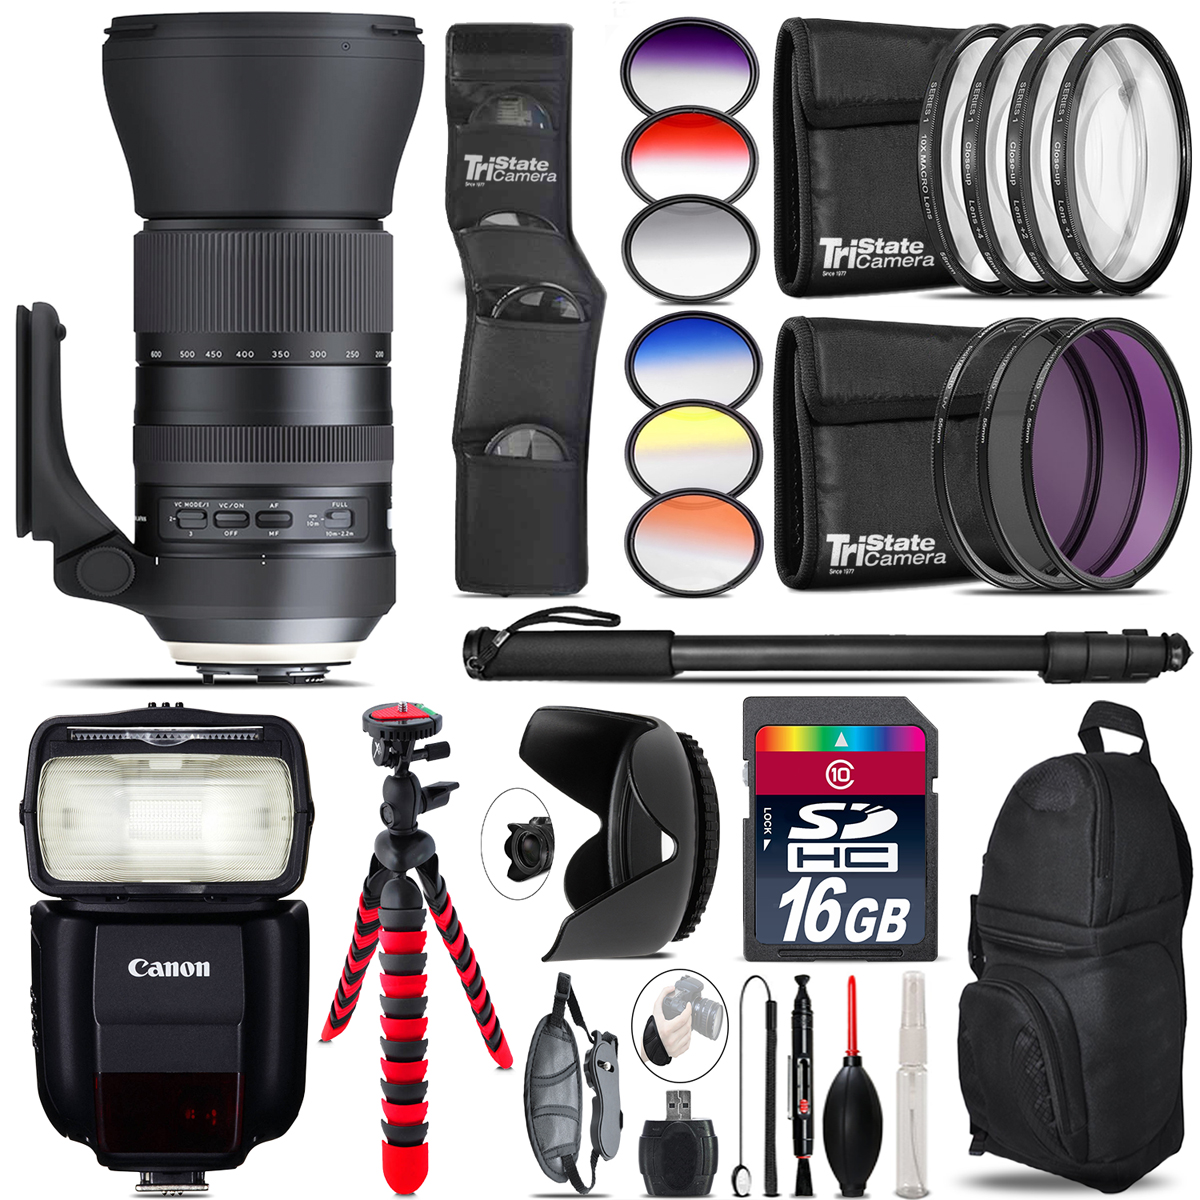 Tamron 150-600mm G2 for Canon + Speedlite 430EX III-RT - 16GB Accessory Kit *FREE SHIPPING*